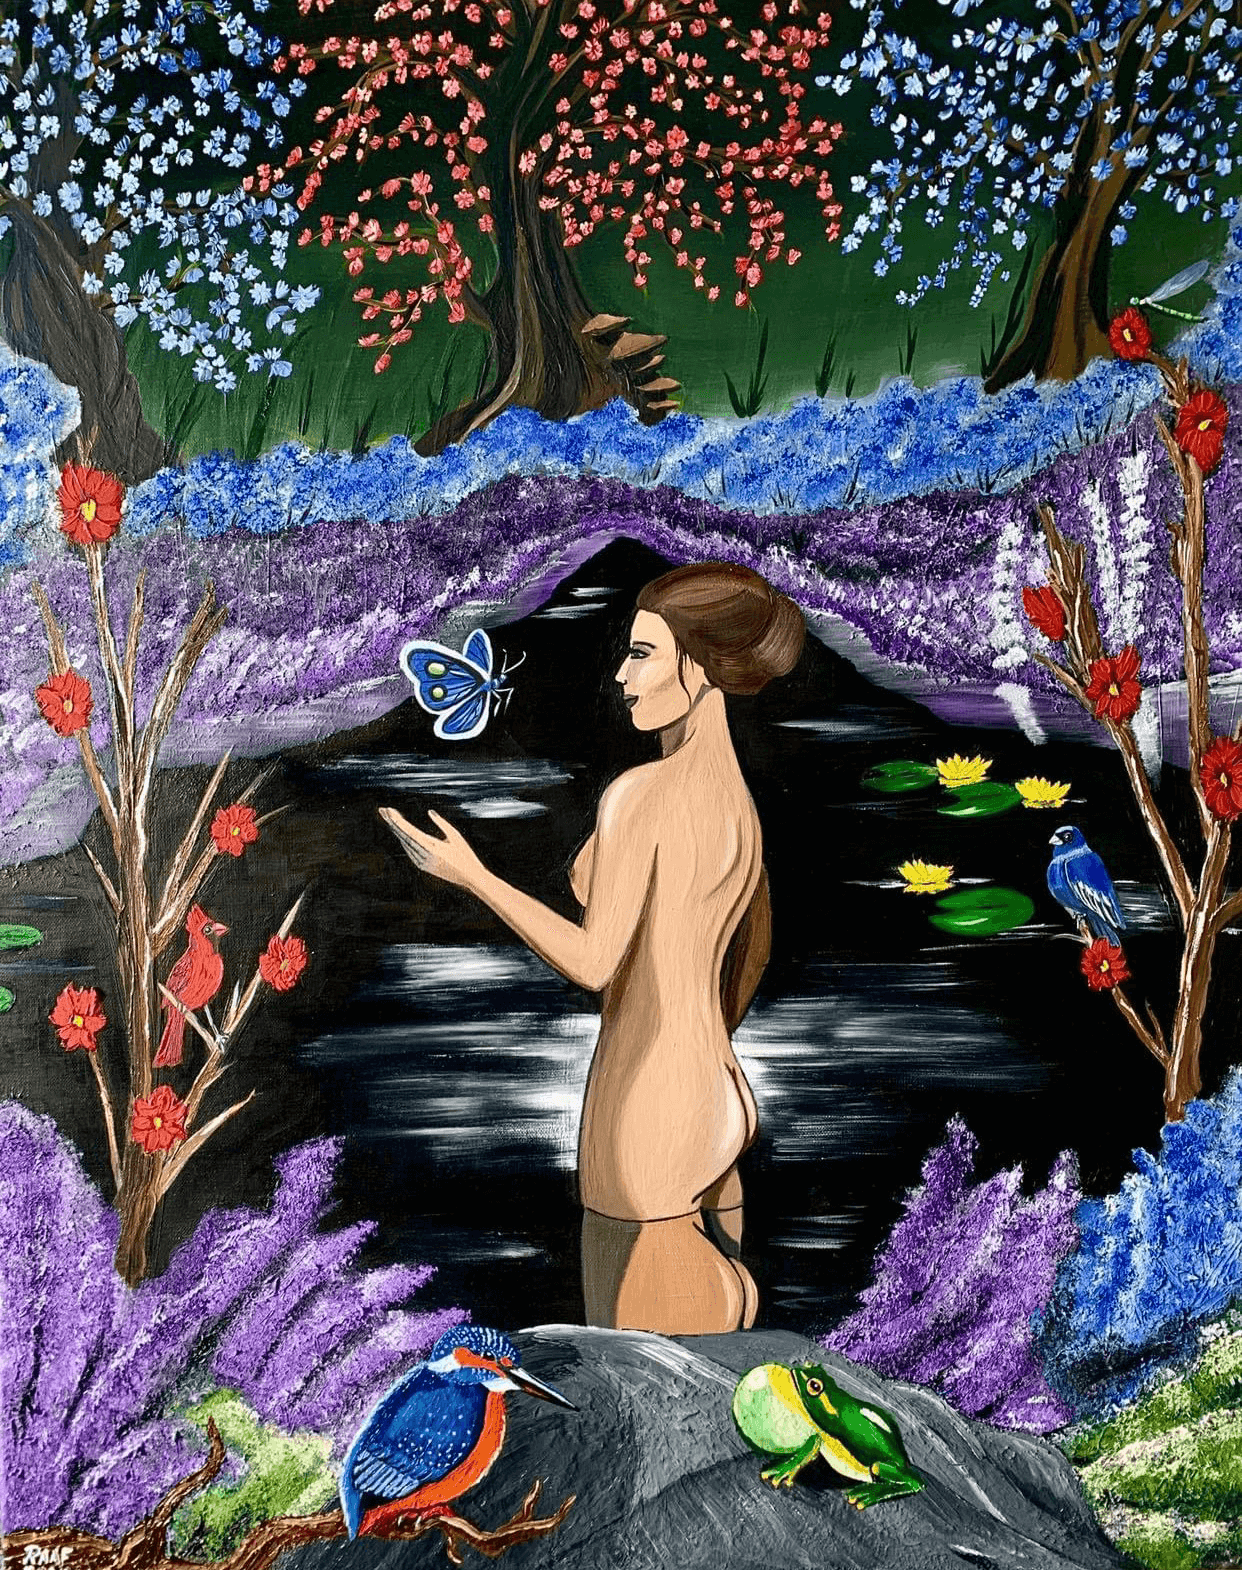 Woman-in-the-water-with-animals-by-raafpaintings